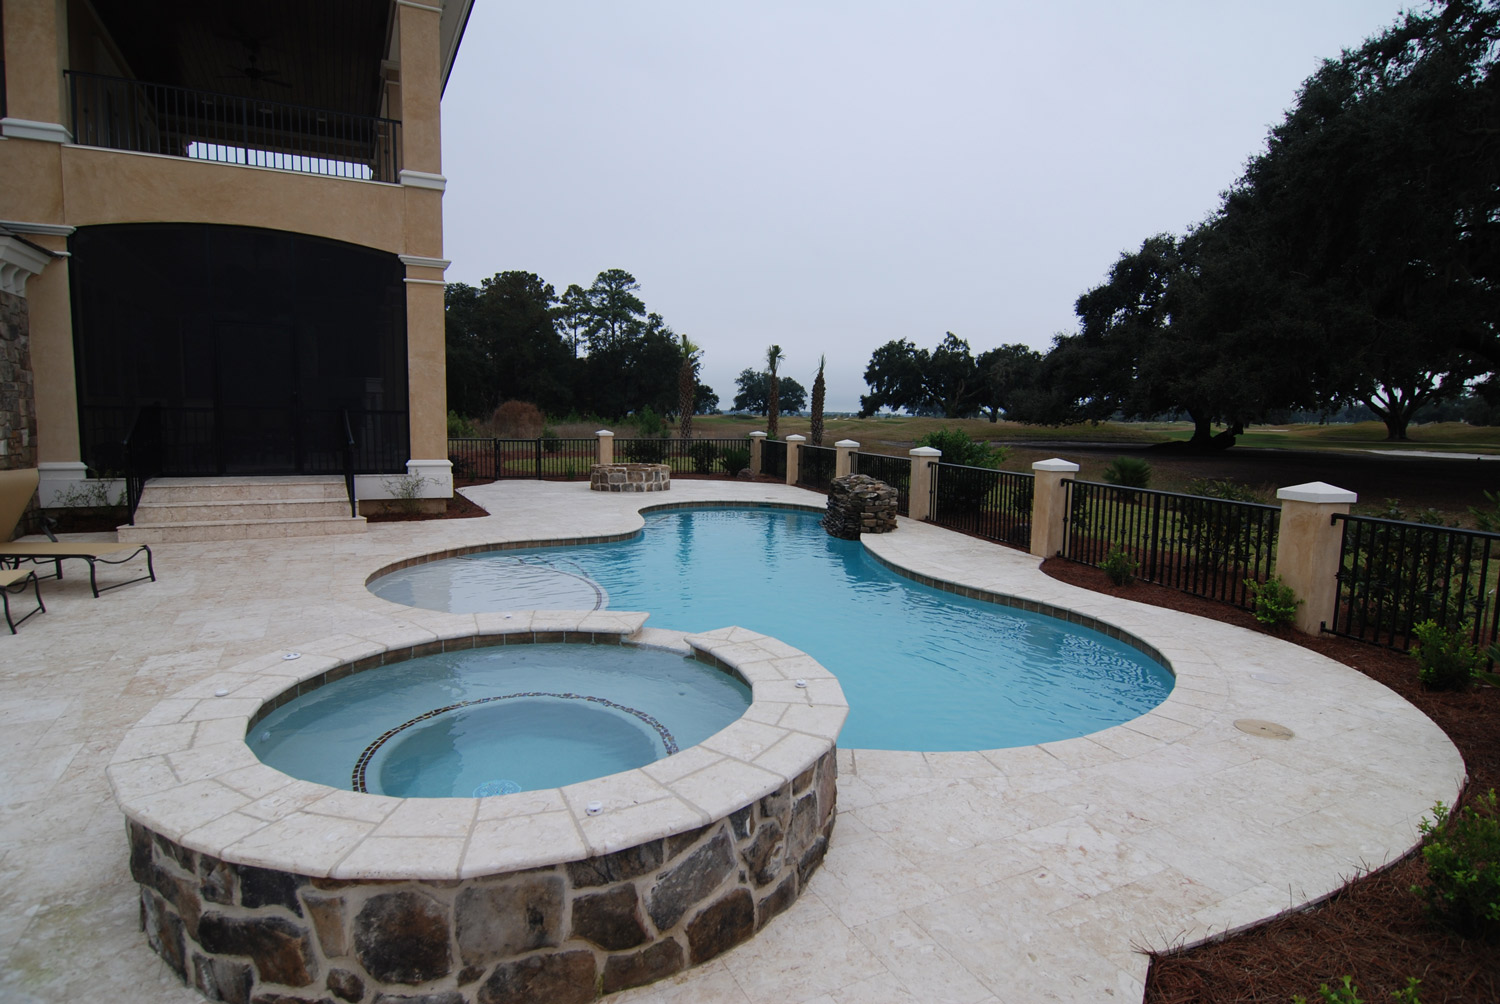 Pool Paver Design Hilton Head Island SC